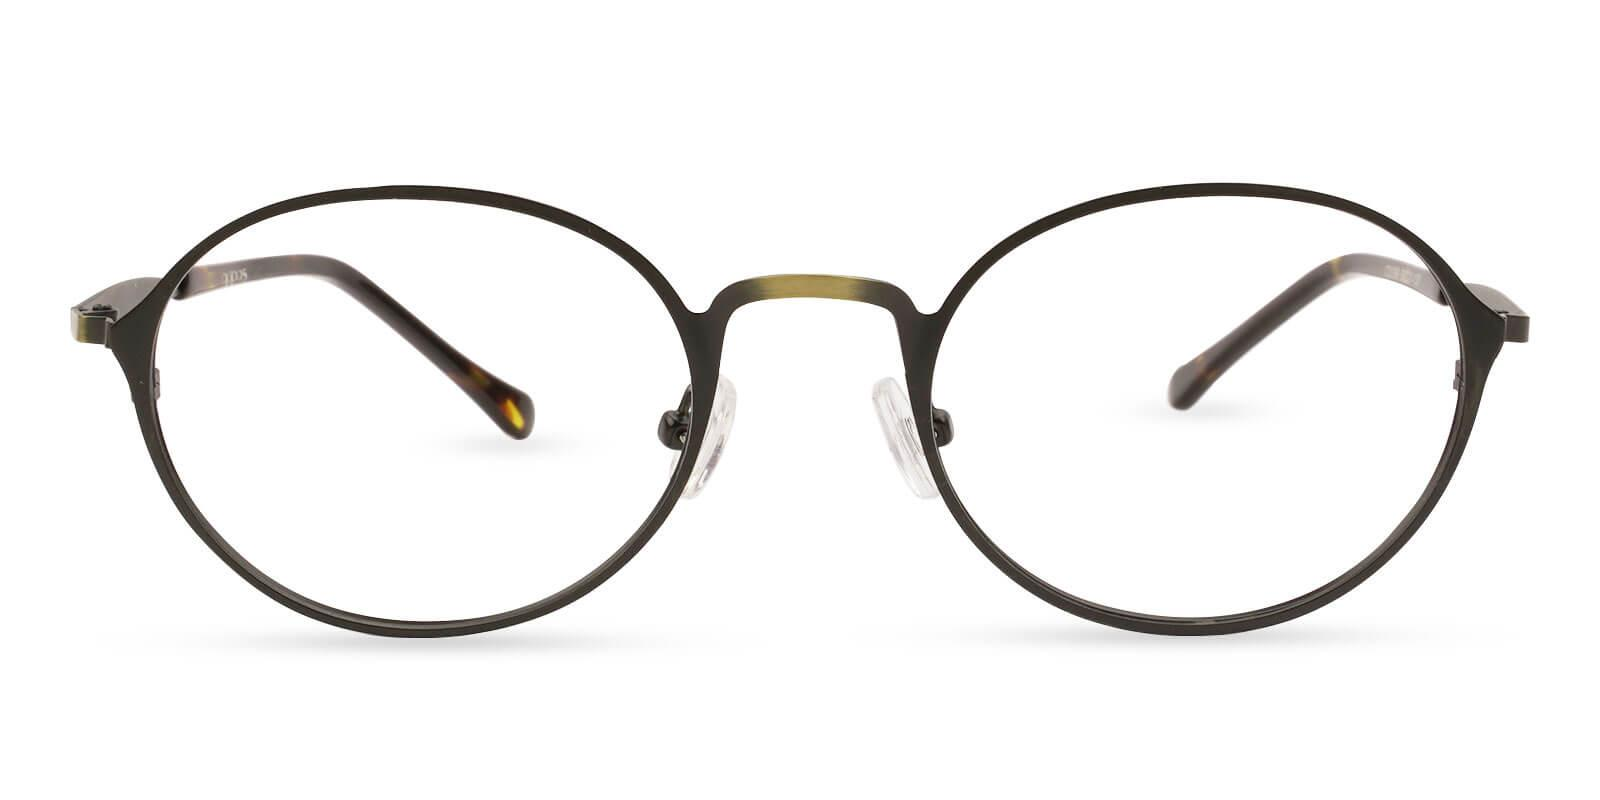 Toughery Brown Metal Eyeglasses , NosePads Frames from ABBE Glasses